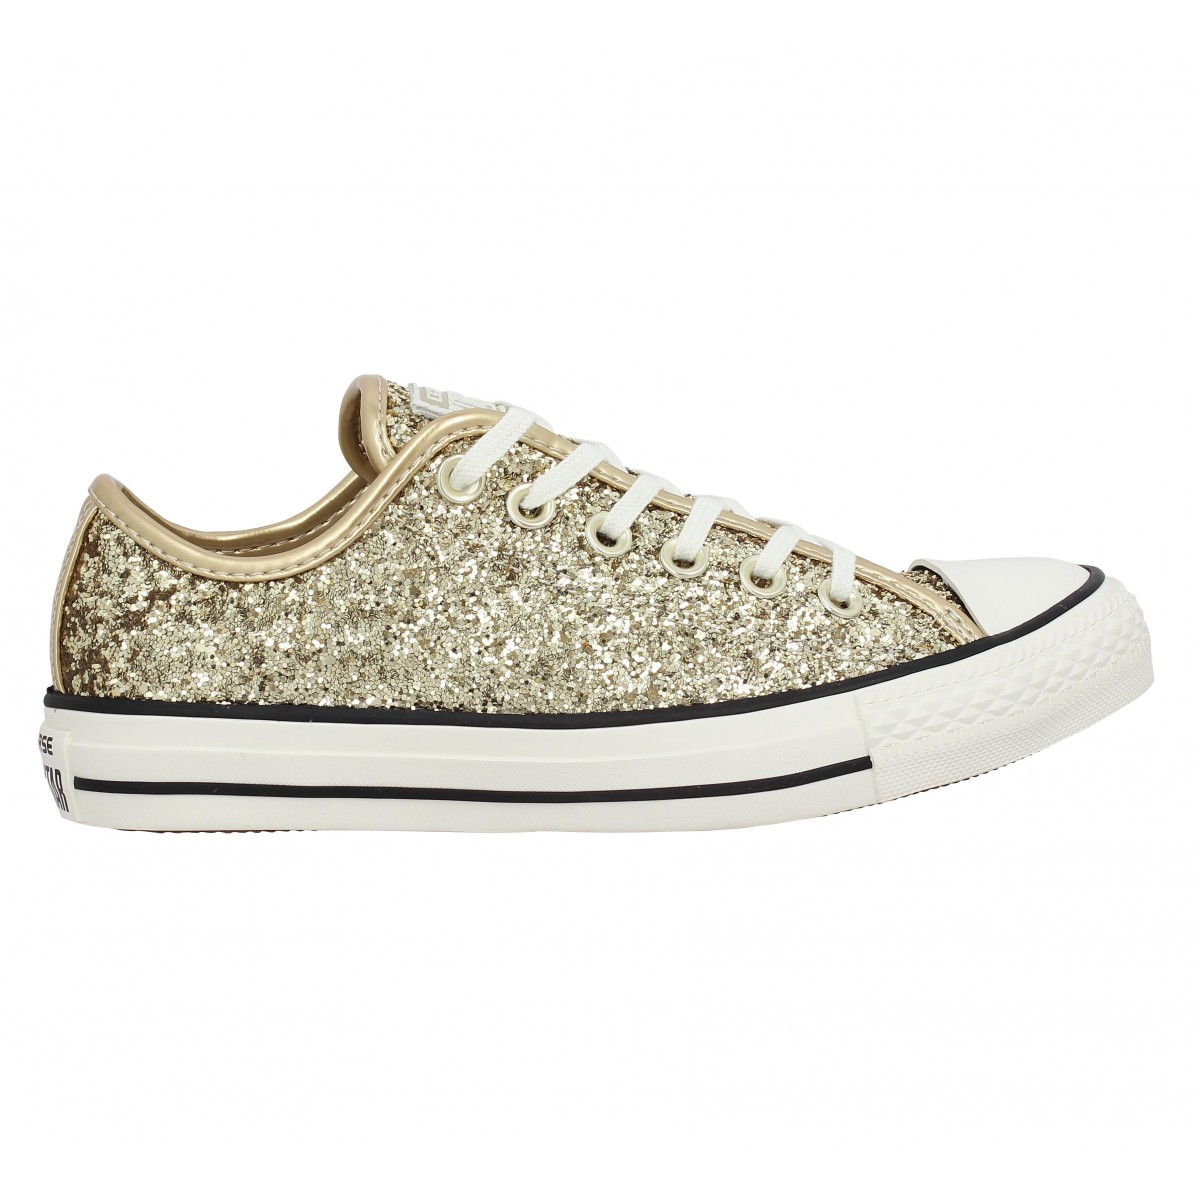 CONVERSE Chuck Taylor All Star paillettes Femme Gold